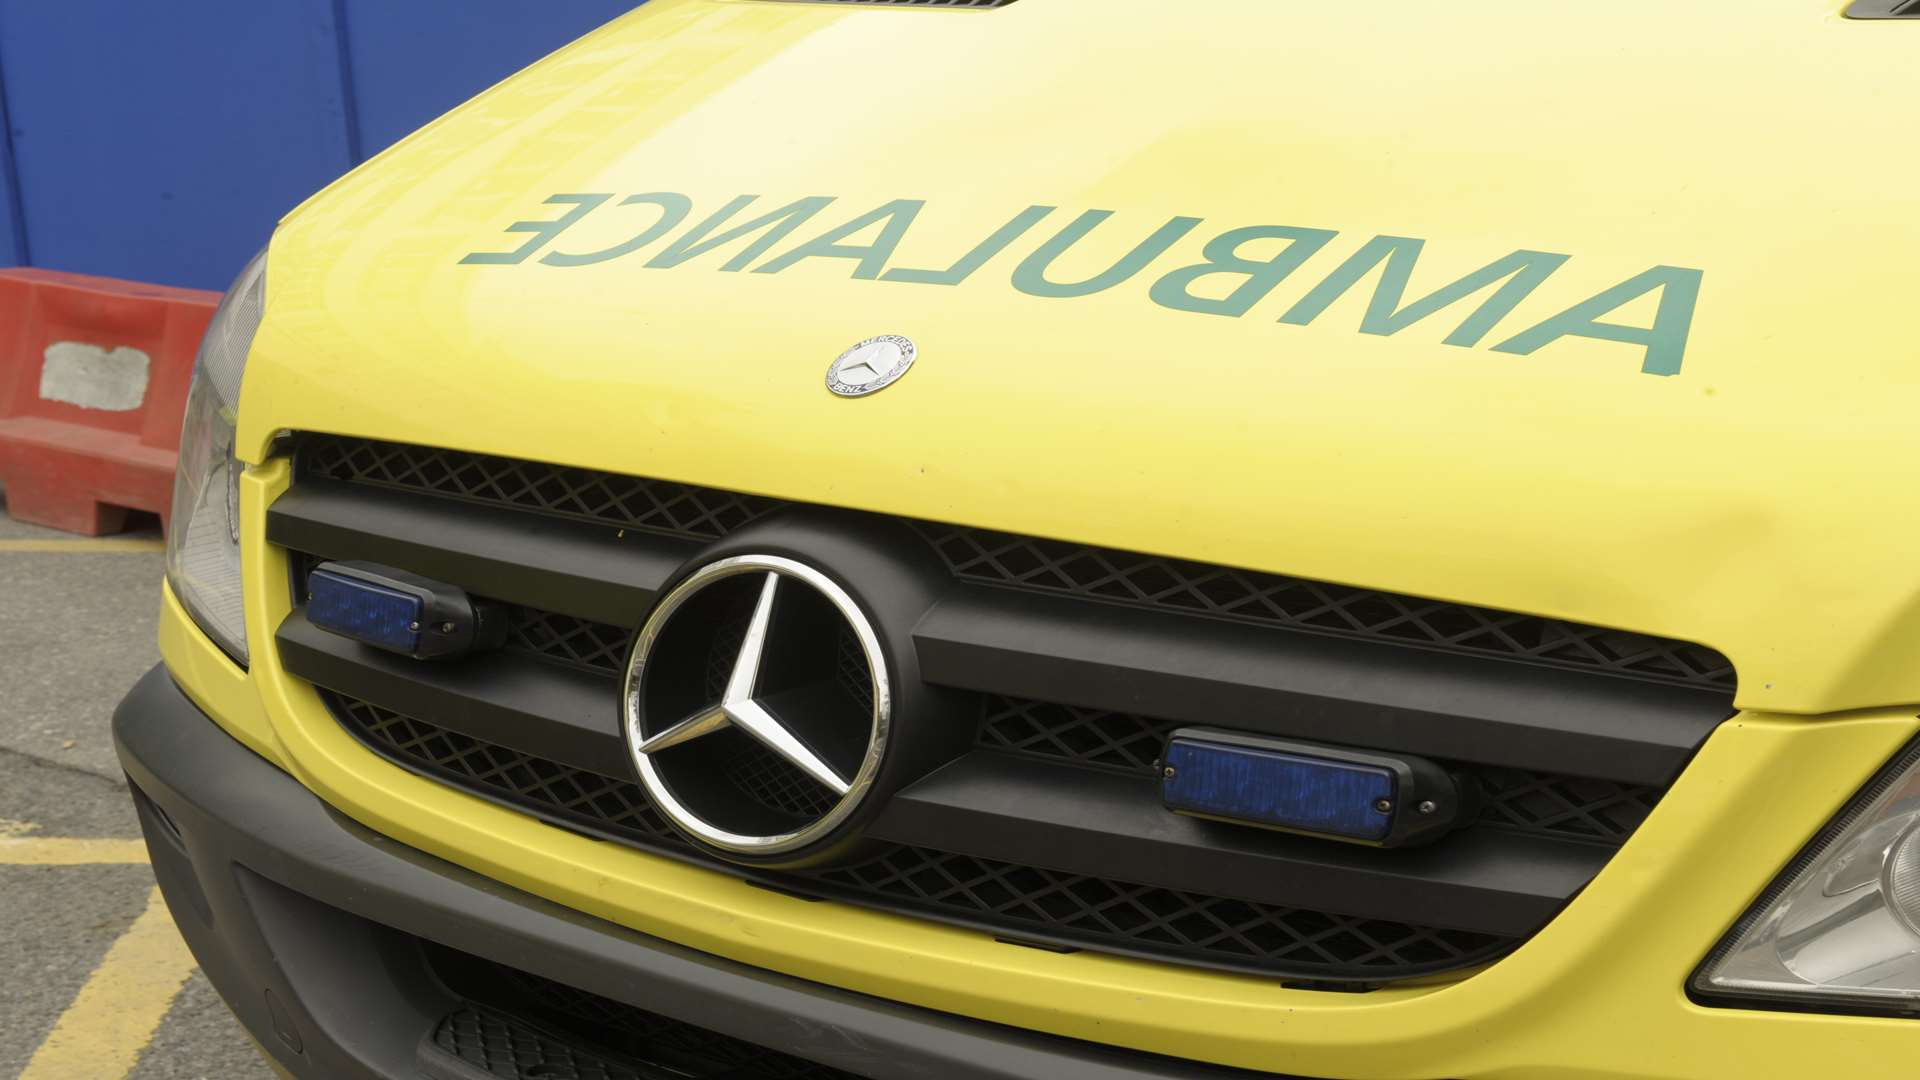 Only two thirds of ambulances reach emergency calls in the eight minute target